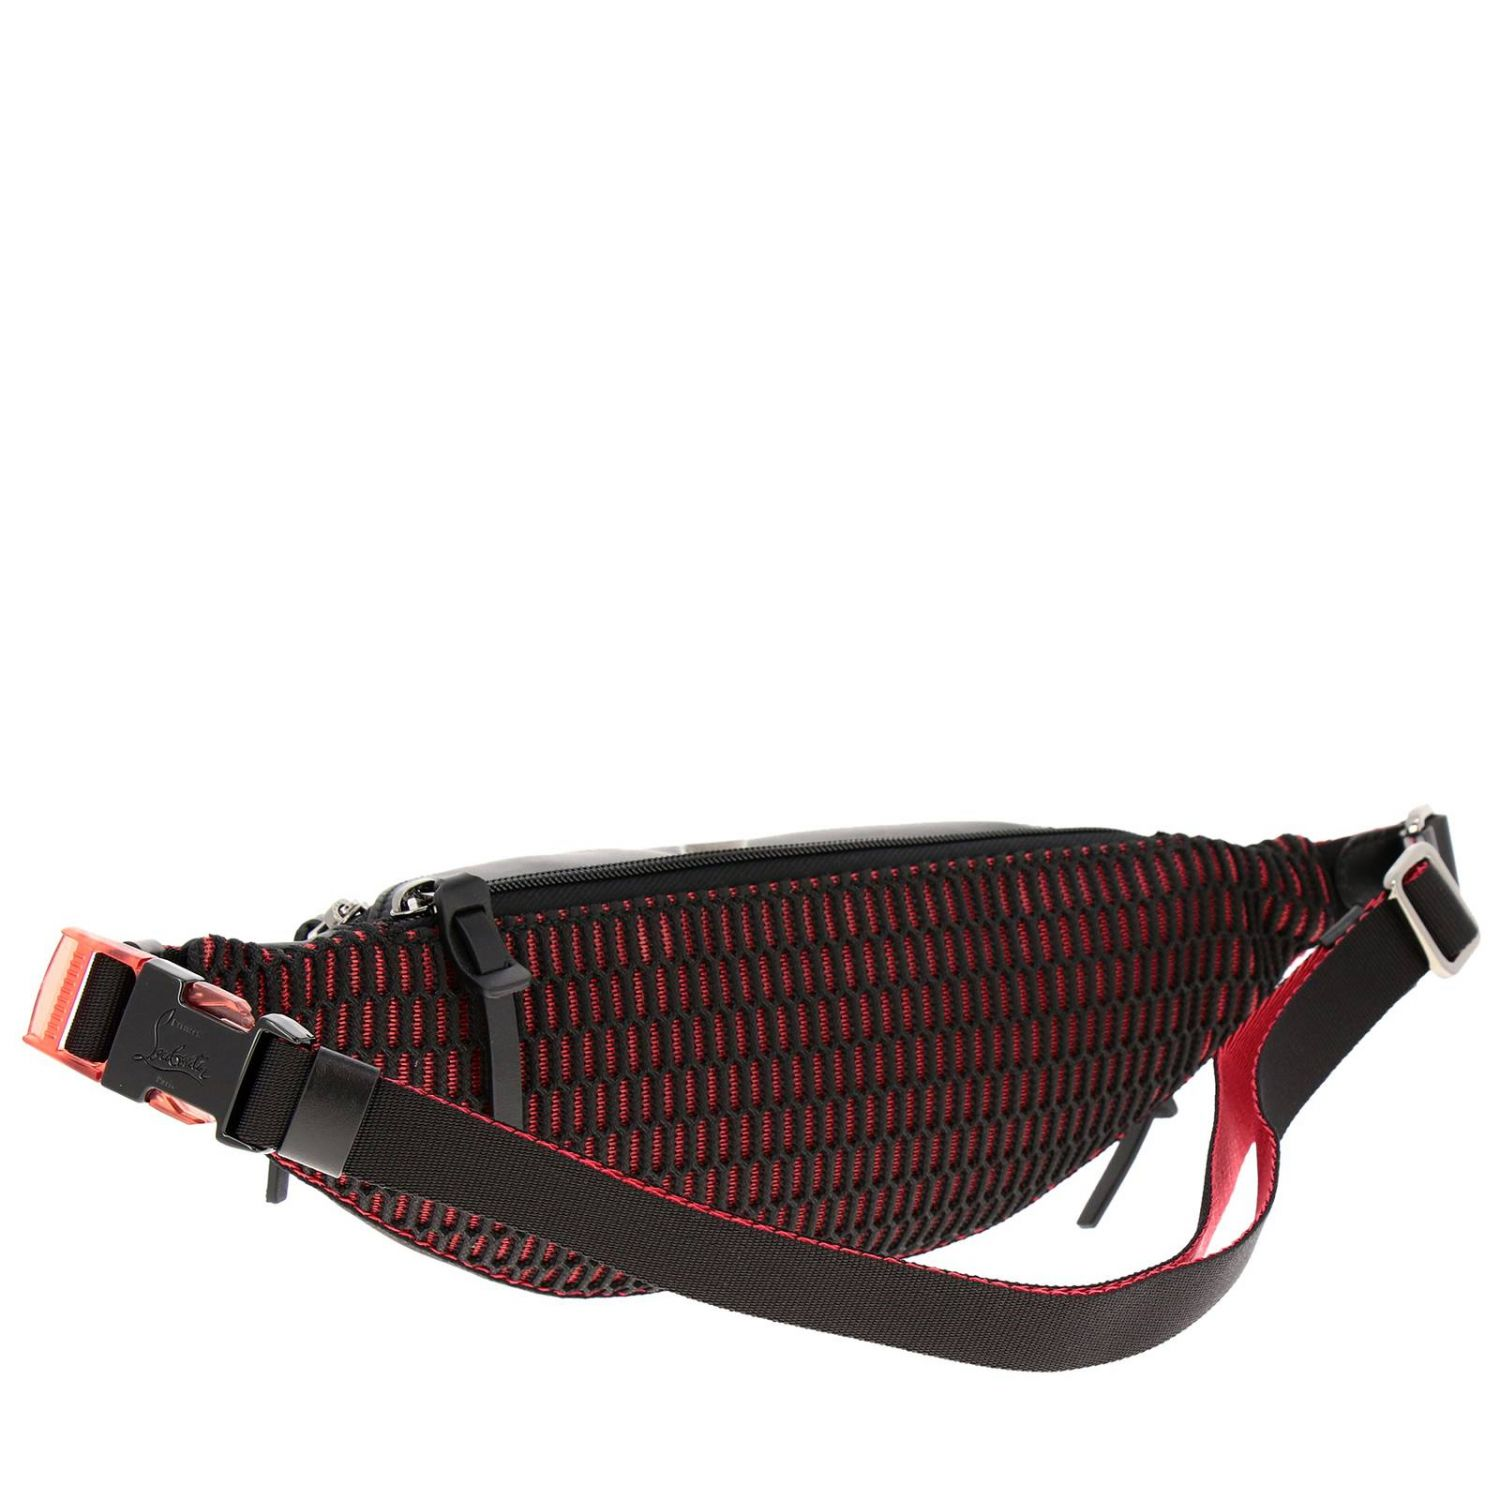 Parisnyc Christian Louboutin belt bag in nylon and leather with studs black 3